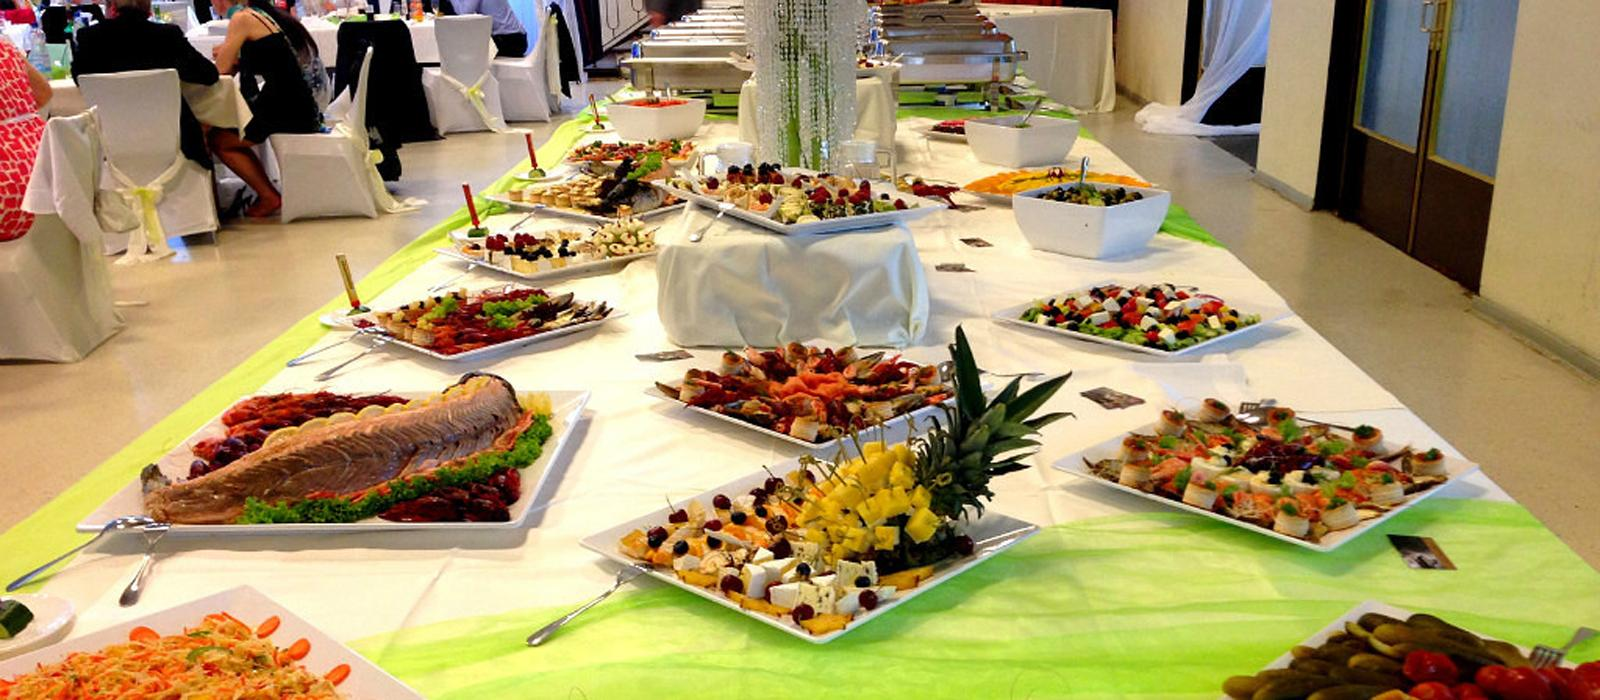 catering-en-lima-buffet-criollo-july-06